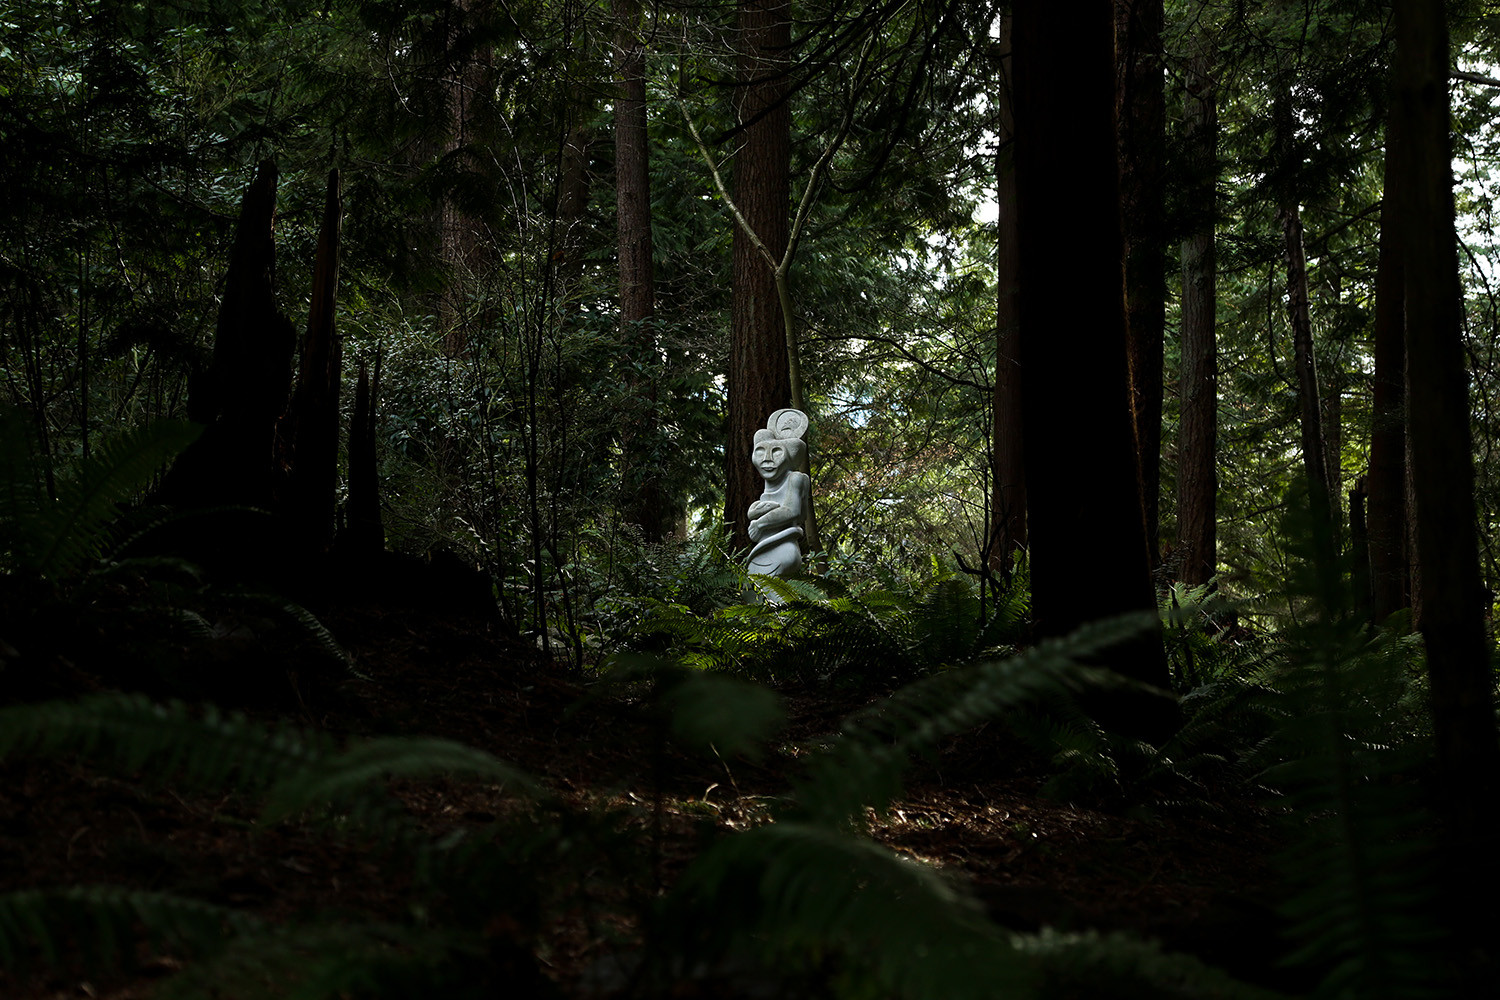 Natura, a sculpture by Charles J. Armstrong, hides amidst some of the larger trees in the park. Big Rock Garden Park, Bellingham, WA. 2018.